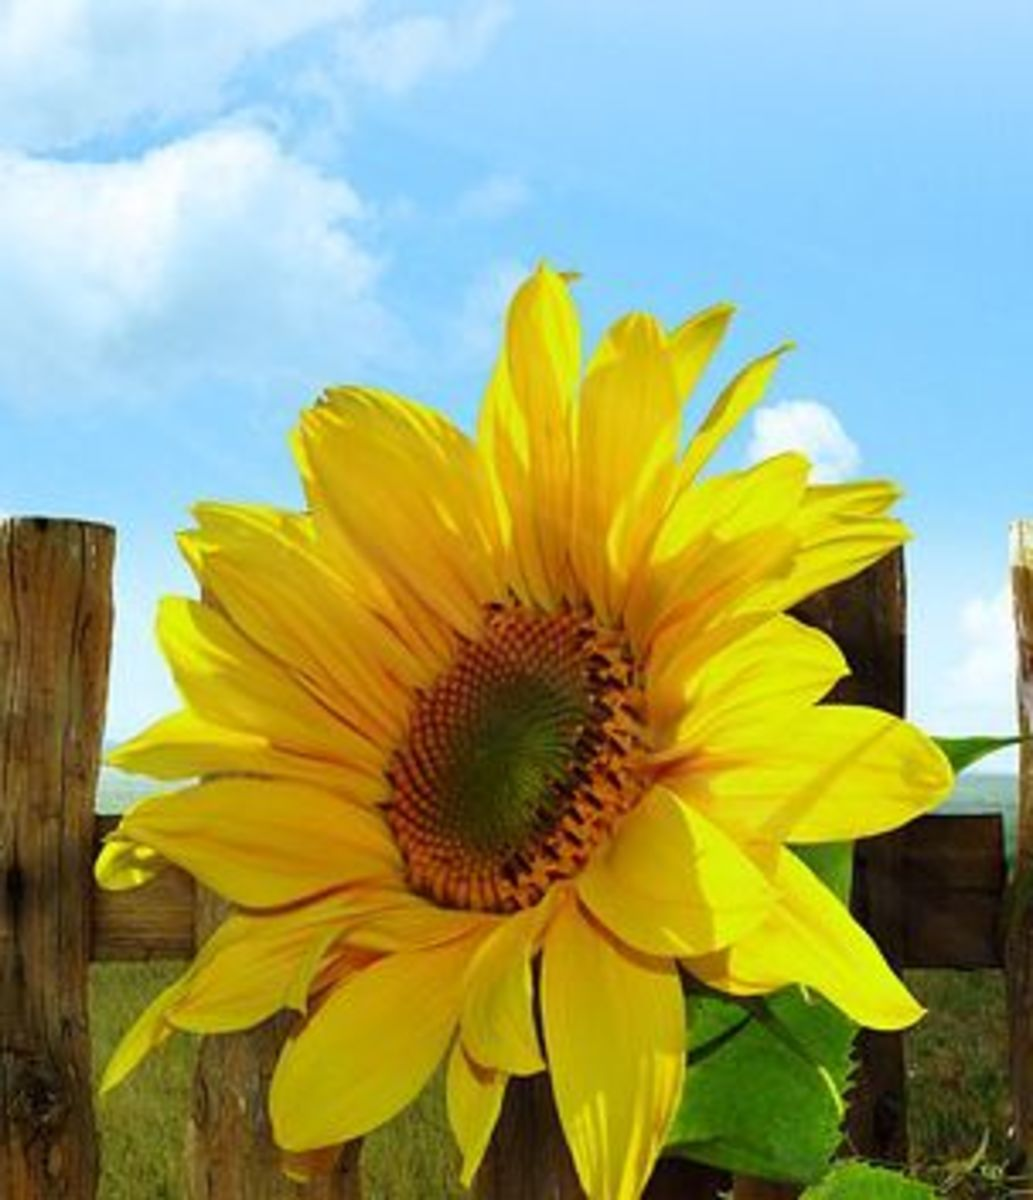 Sunflower against a fence and blue country sky